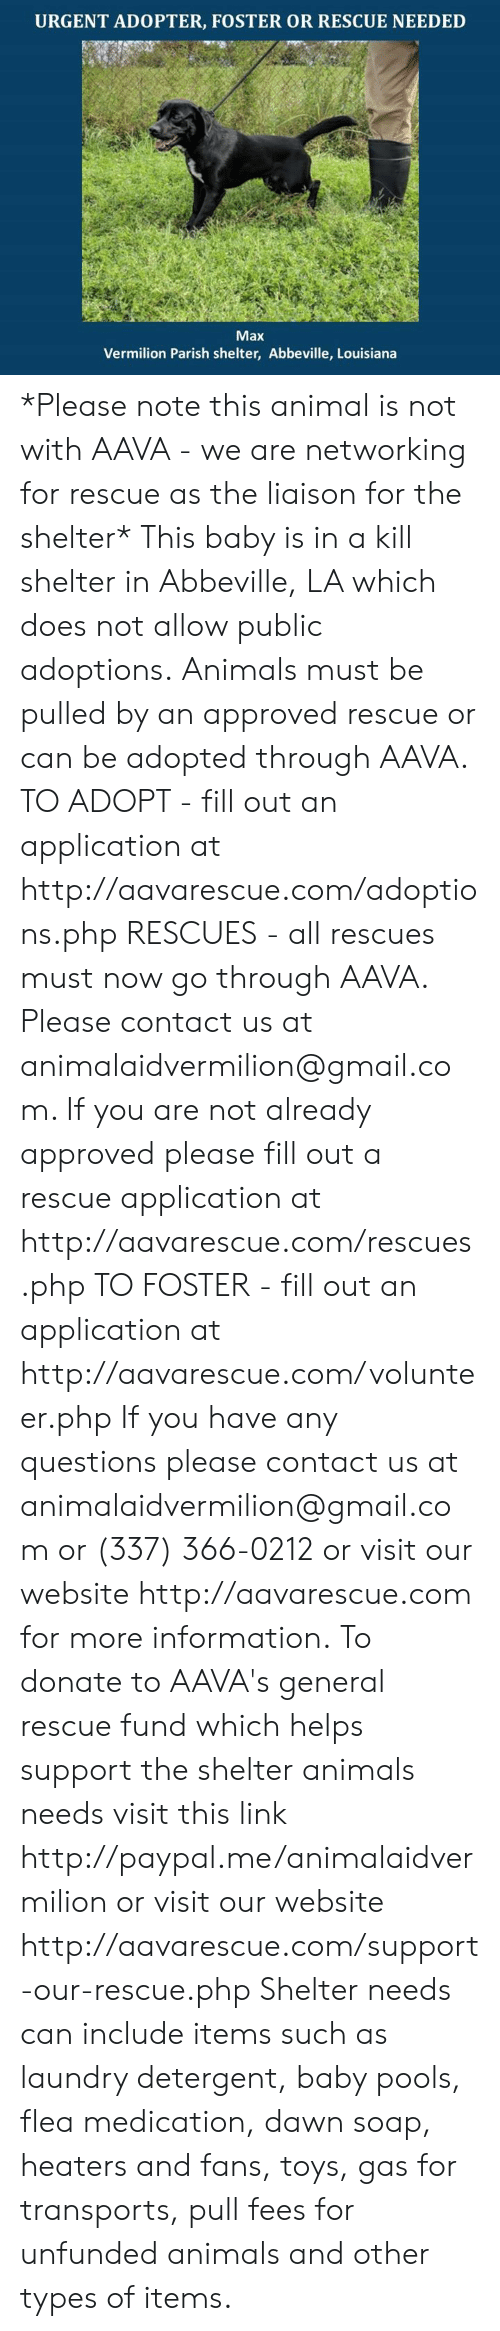 Animals, Laundry, and Memes: URGENT ADOPTER, FOSTER OR RESCUE NEEDED  Max  Vermilion Parish shelter, Abbeville, Louisiana *Please note this animal is not with AAVA - we are networking for rescue as the liaison for the shelter* This baby is in a kill shelter in Abbeville, LA which does not allow public adoptions. Animals must be pulled by an approved rescue or can be adopted through AAVA.  TO ADOPT - fill out an application at http://aavarescue.com/adoptions.php  RESCUES - all rescues must now go through AAVA. Please contact us at animalaidvermilion@gmail.com. If you are not already approved please fill out a rescue application at http://aavarescue.com/rescues.php  TO FOSTER - fill out an application at http://aavarescue.com/volunteer.php  If you have any questions please contact us at animalaidvermilion@gmail.com or (337) 366-0212 or visit our website http://aavarescue.com for more information.  To donate to AAVA's general rescue fund which helps support the shelter animals needs visit this link http://paypal.me/animalaidvermilion or visit our website http://aavarescue.com/support-our-rescue.php Shelter needs can include items such as laundry detergent, baby pools, flea medication, dawn soap, heaters and fans, toys, gas for transports, pull fees for unfunded animals and other types of items.